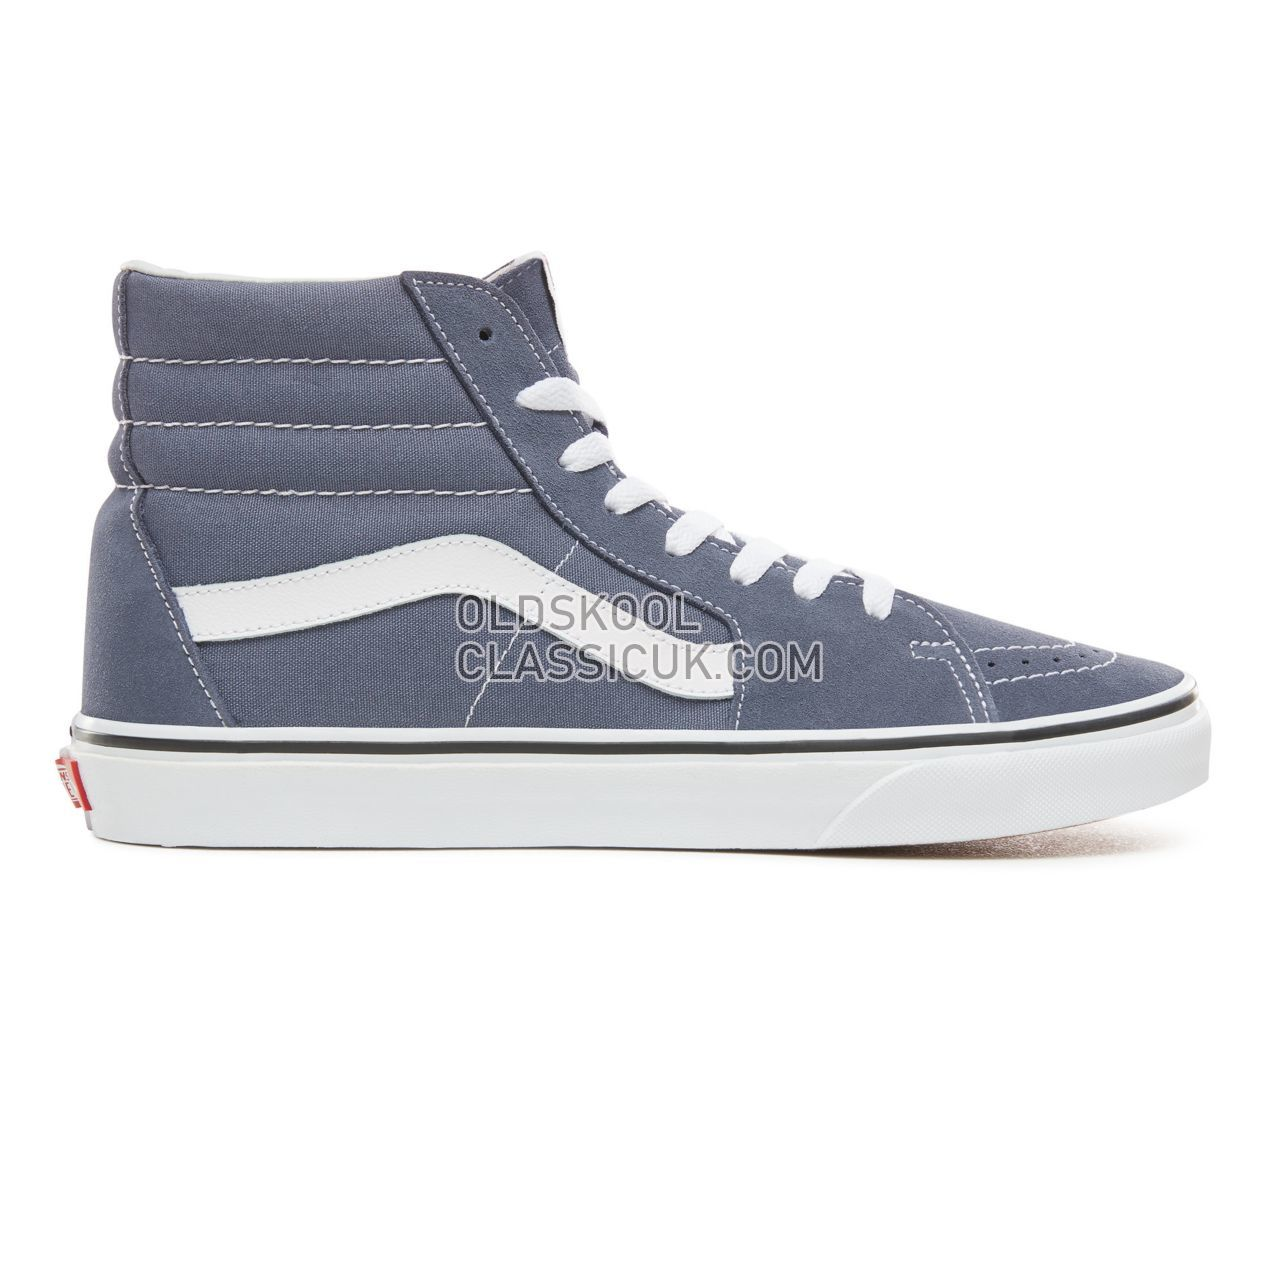 Vans Sk8-Hi Sneakers Mens Grisaille/True White VN0A38GEUKY Shoes